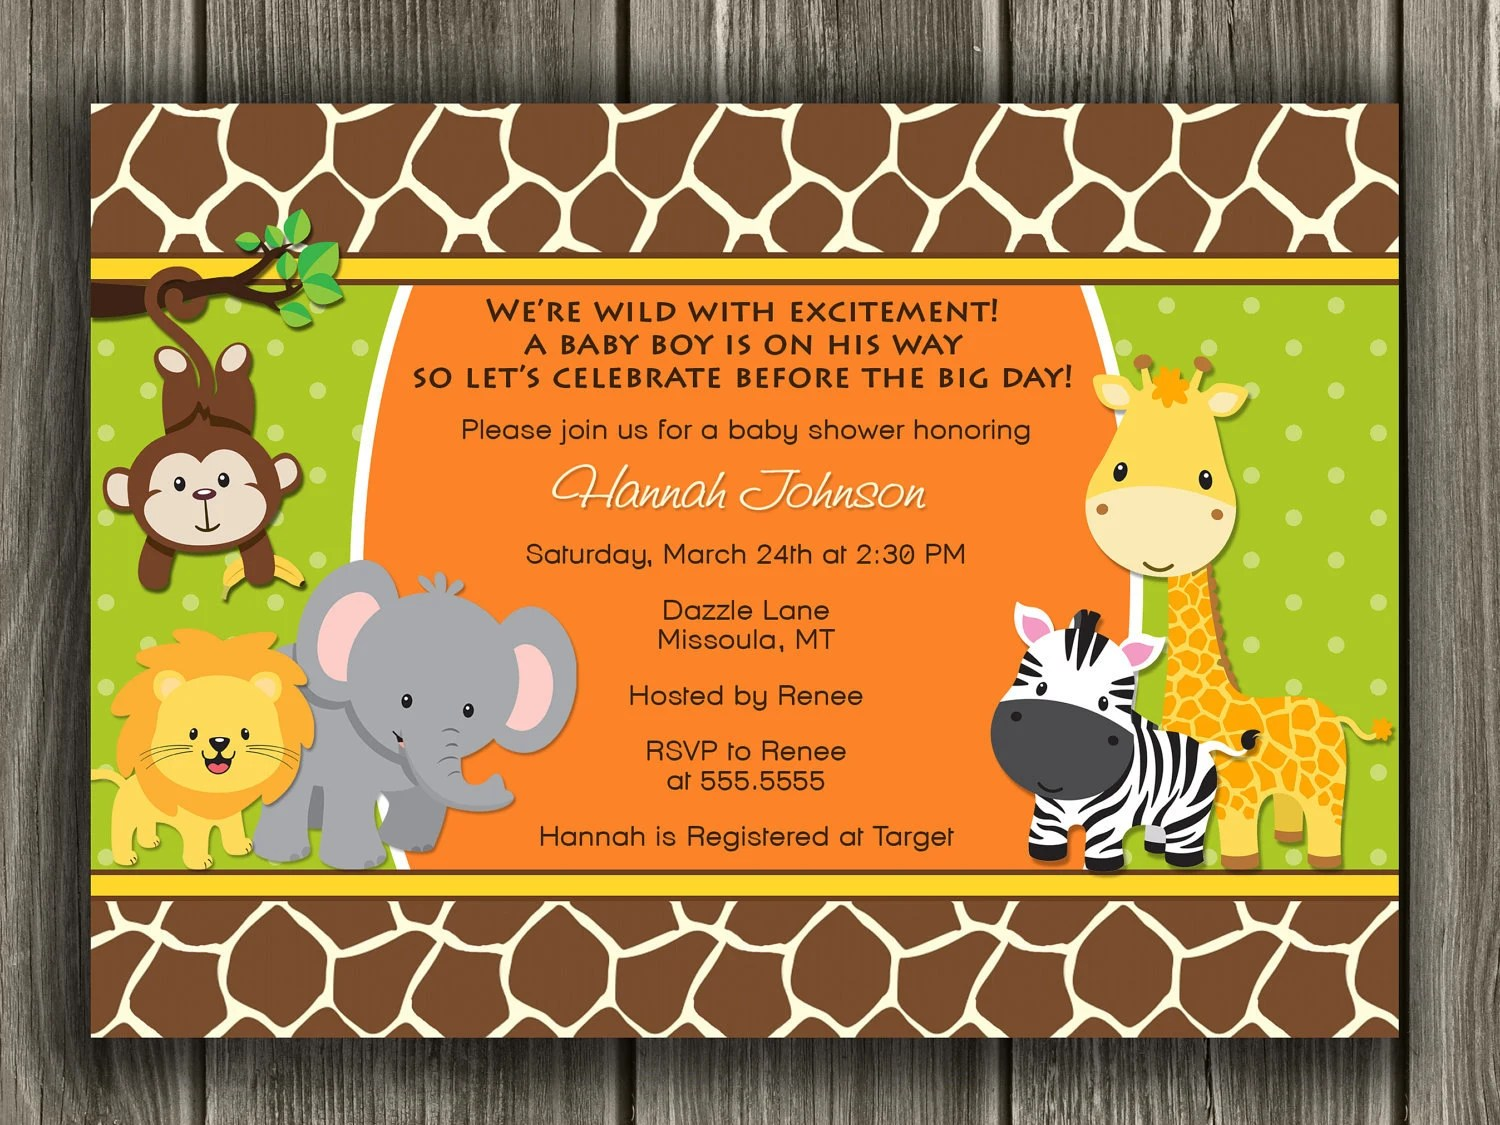 Jungle Baby Shower Invitation - FREE thank you card included